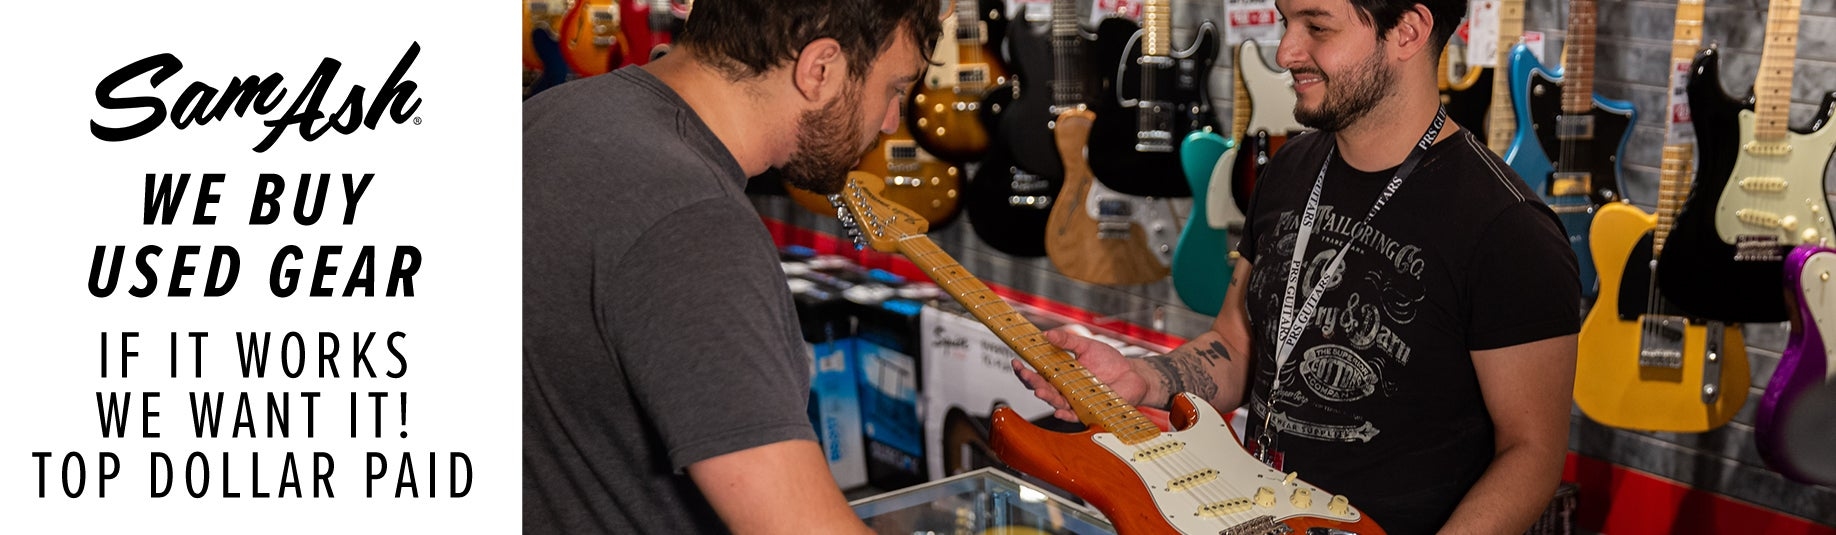 We want to buy your used gear! If it works, we want it - top dollar paid.